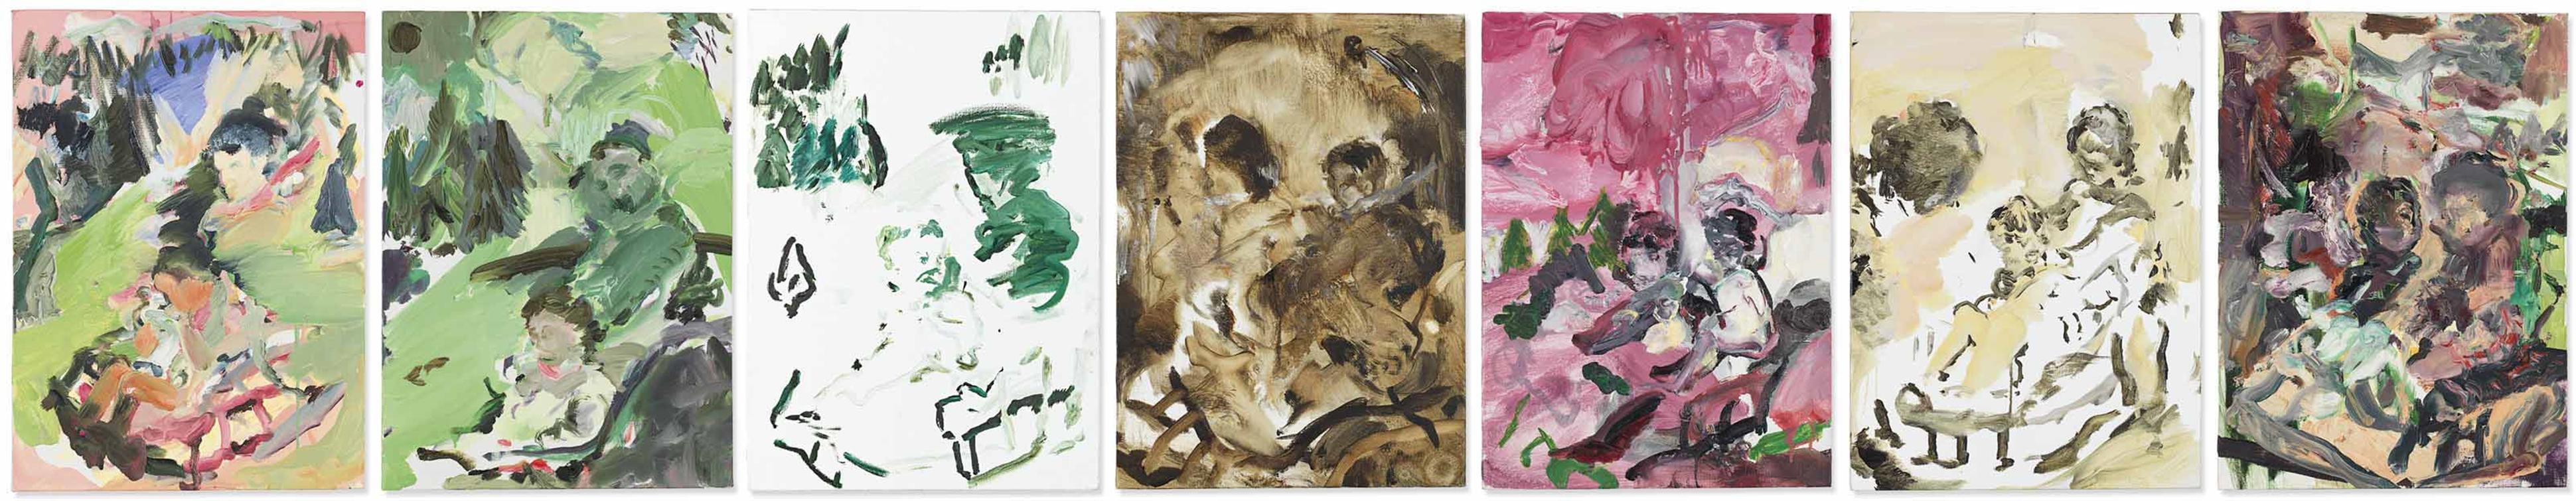 Cecily Brown-Les Sept Jours De La Semaine (The Seven Days Of The Week)-2007